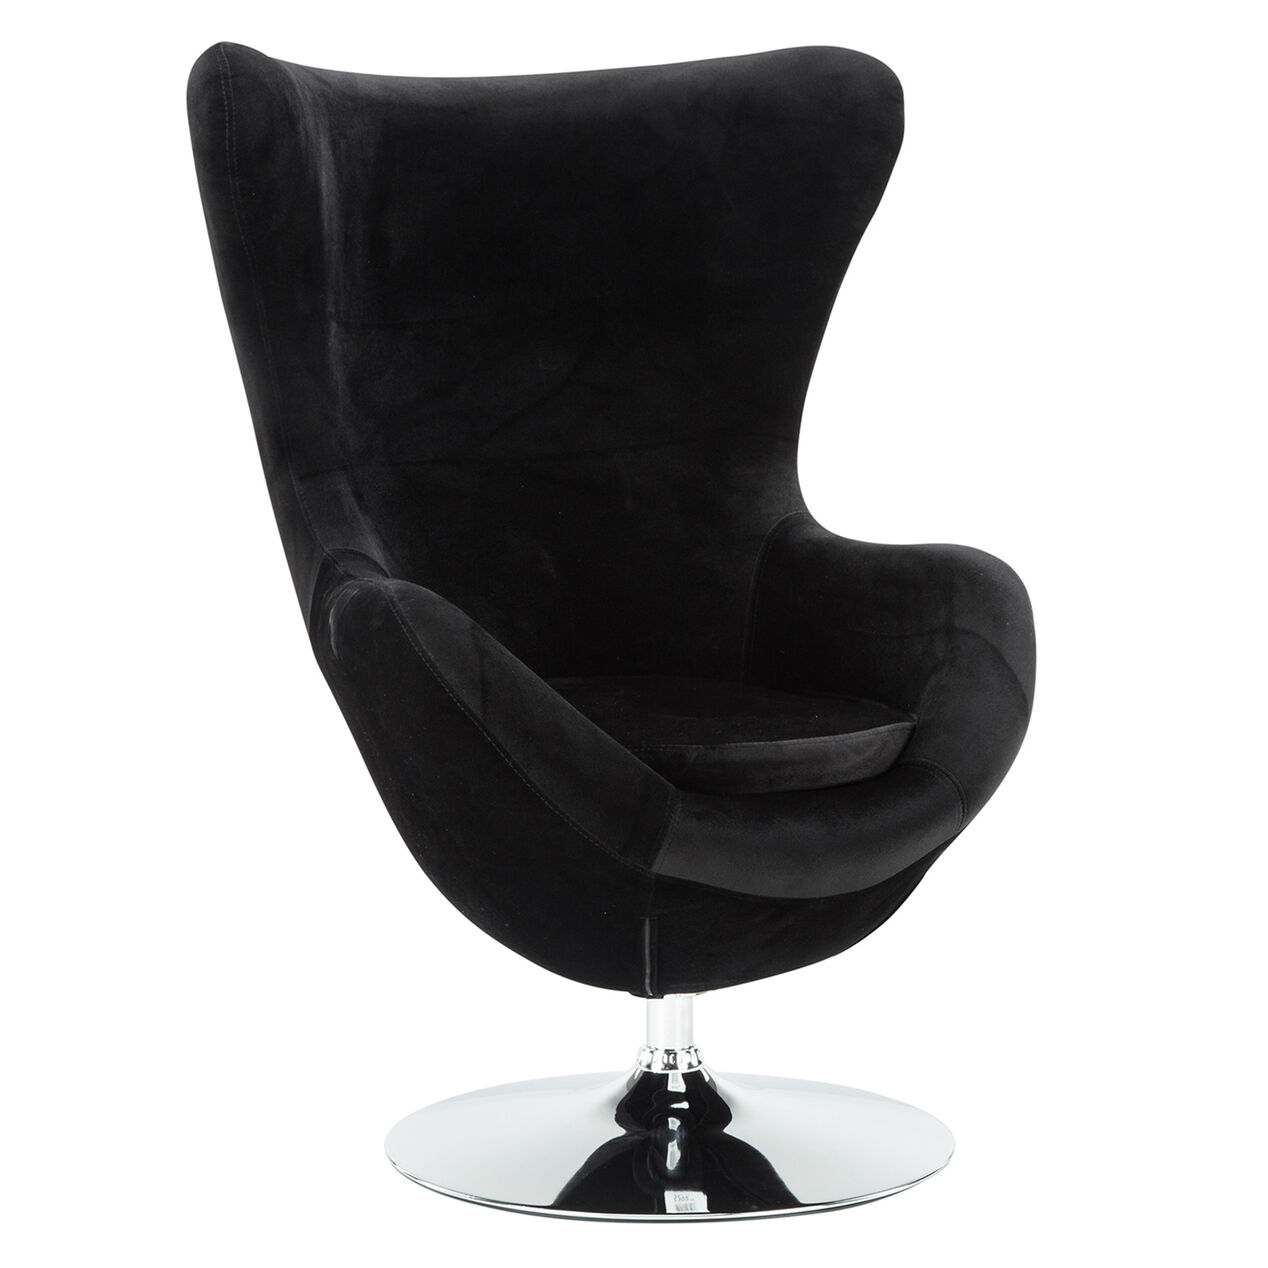 icon velvet egg chair black at home. Black Bedroom Furniture Sets. Home Design Ideas